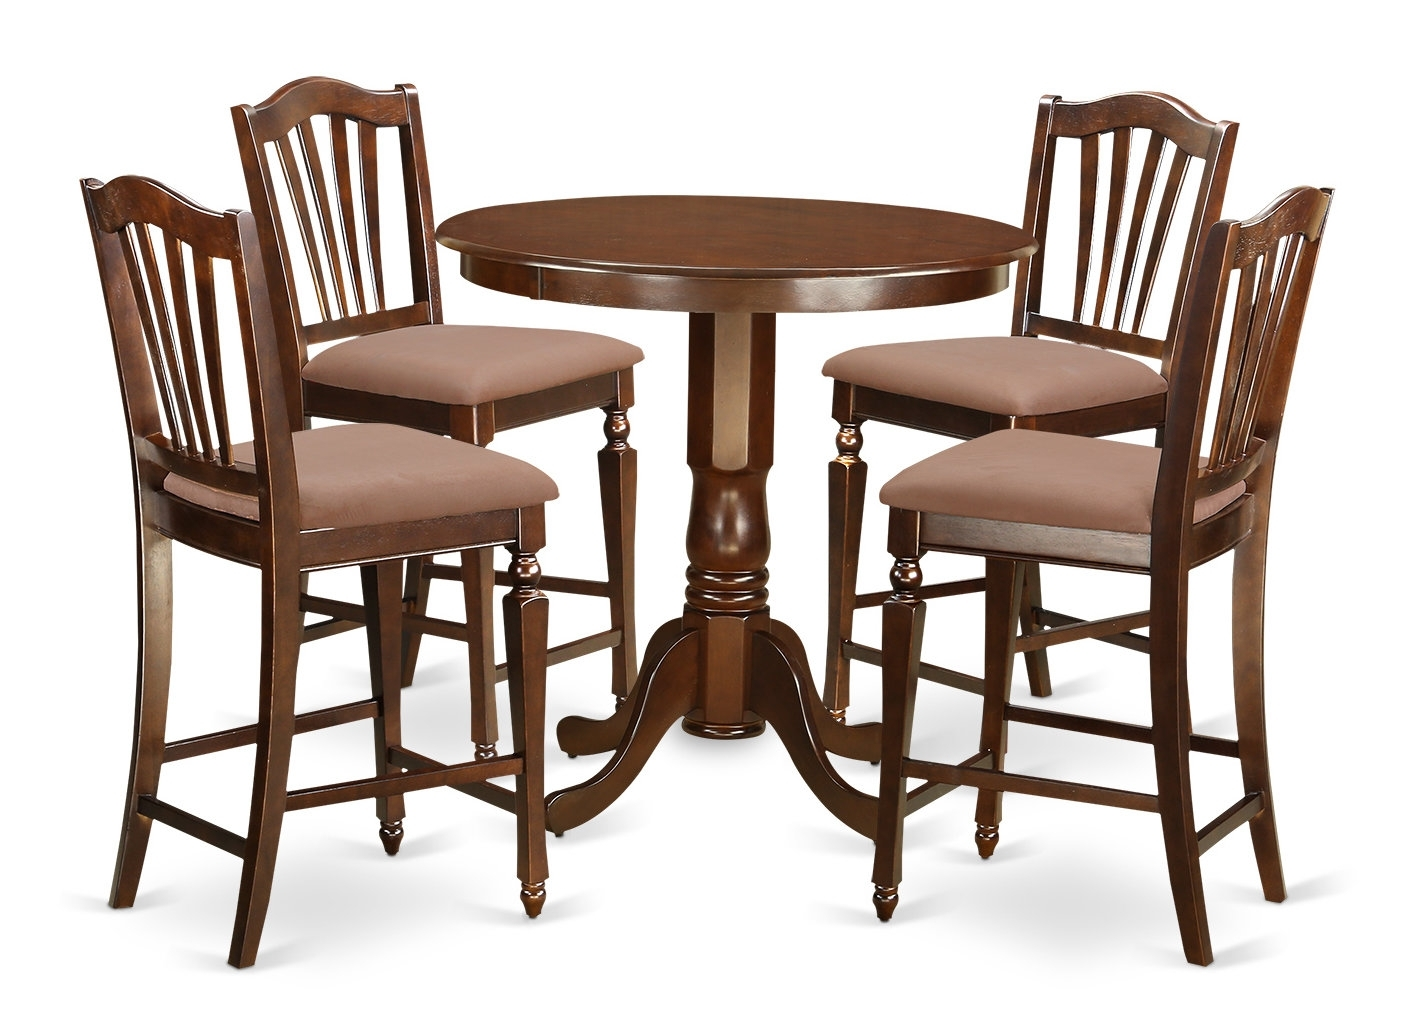 East West Jackson 5 Piece Counter Height Pub Table Set | Wayfair In Most Recently Released Jaxon Grey 7 Piece Rectangle Extension Dining Sets With Uph Chairs (Image 5 of 20)